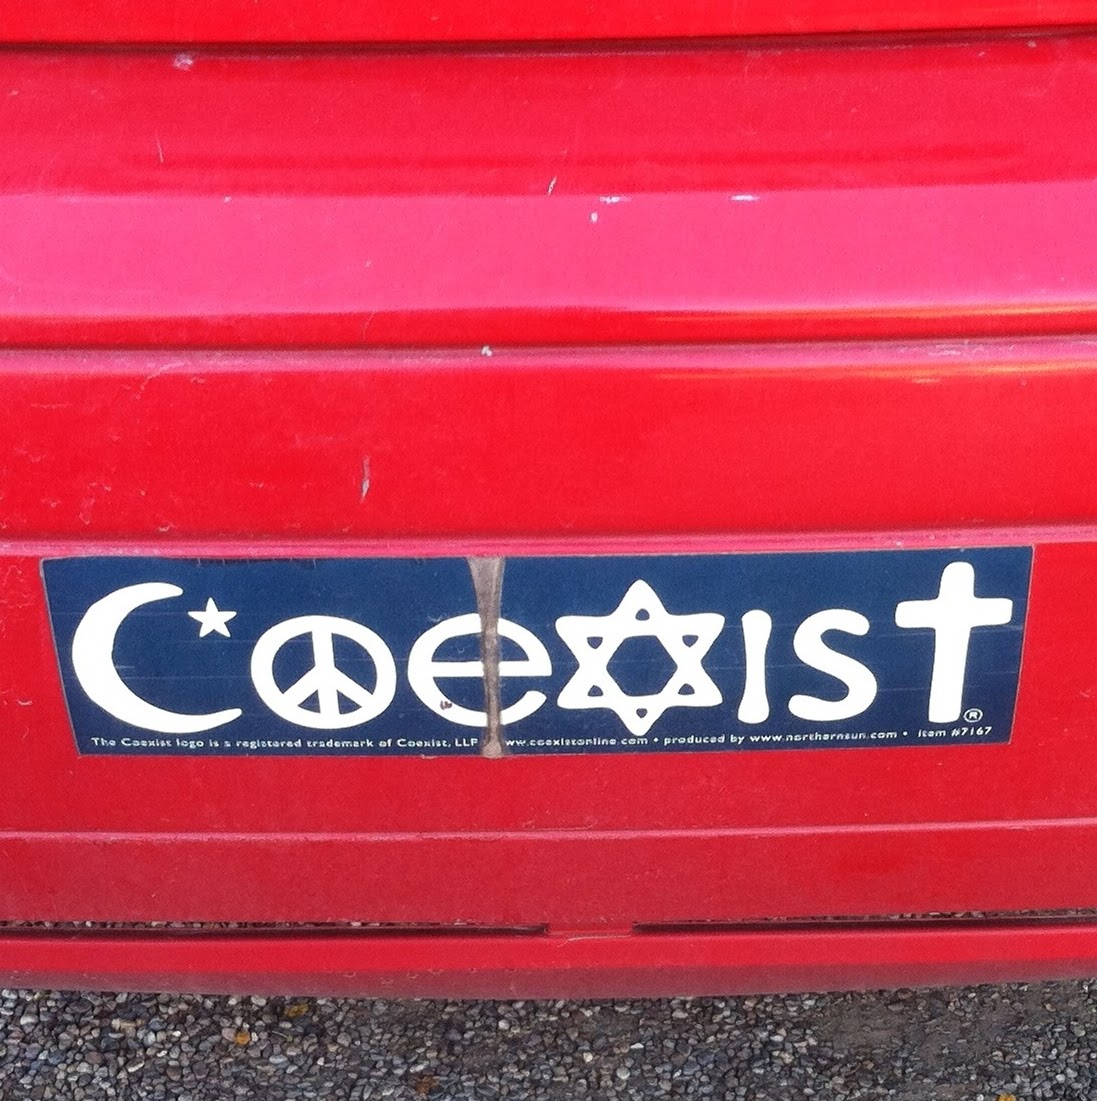 Tucson Daily Photo ~: Pondering the meaning of this bumper sticker